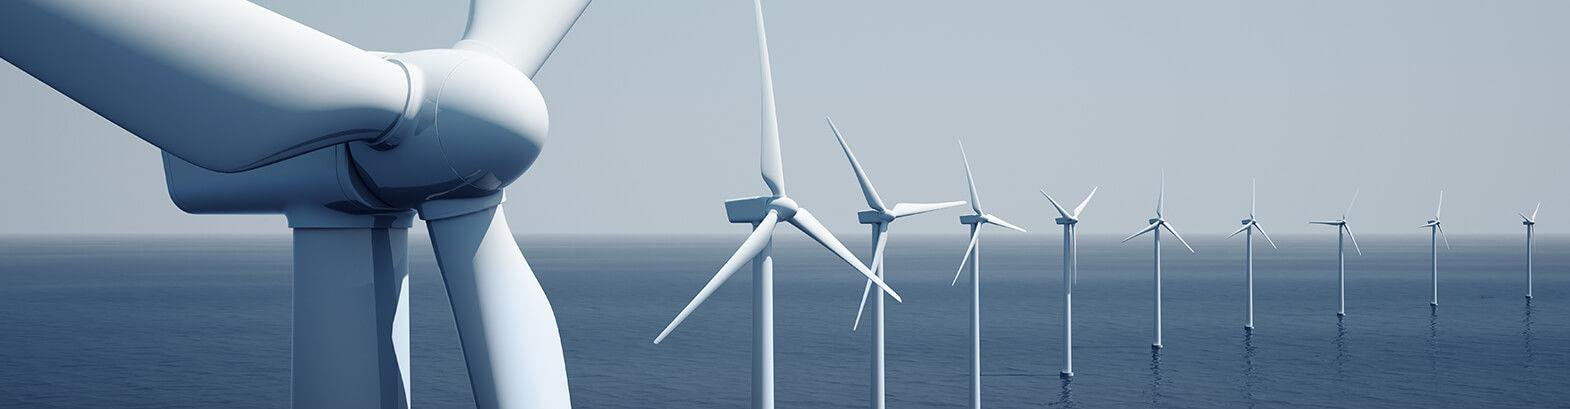 slide-show-wind-turbines.jpg